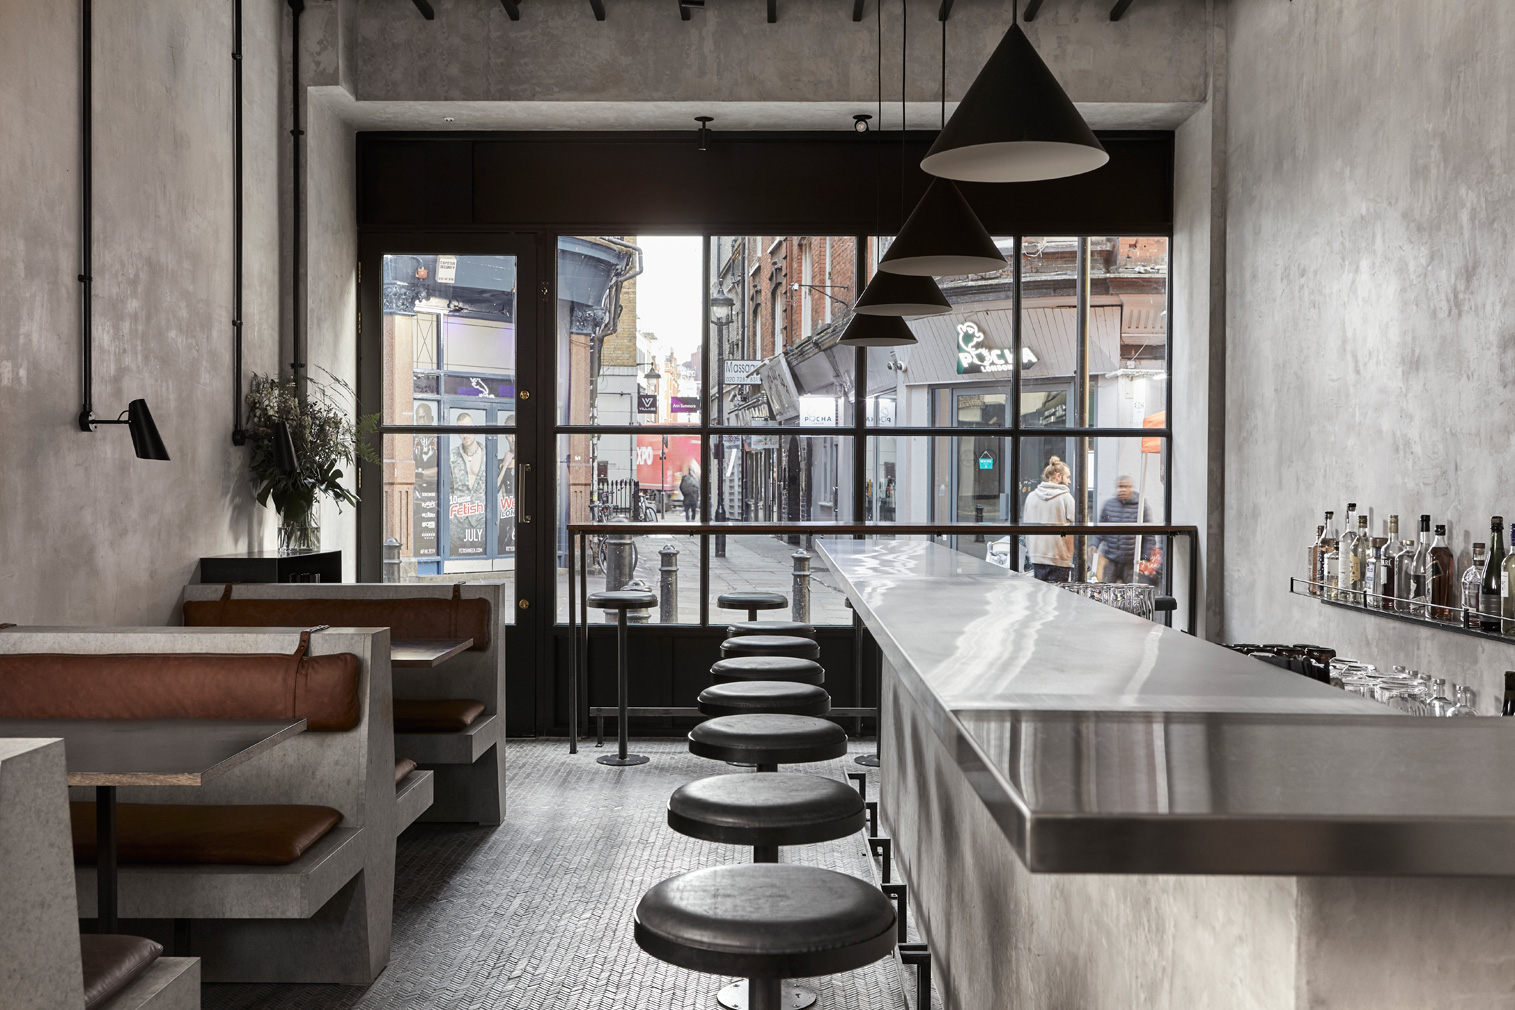 Sri Lankan restaurant Paradise has set up shop in Soho with a tropical brutalist oasis on Rupert Street.